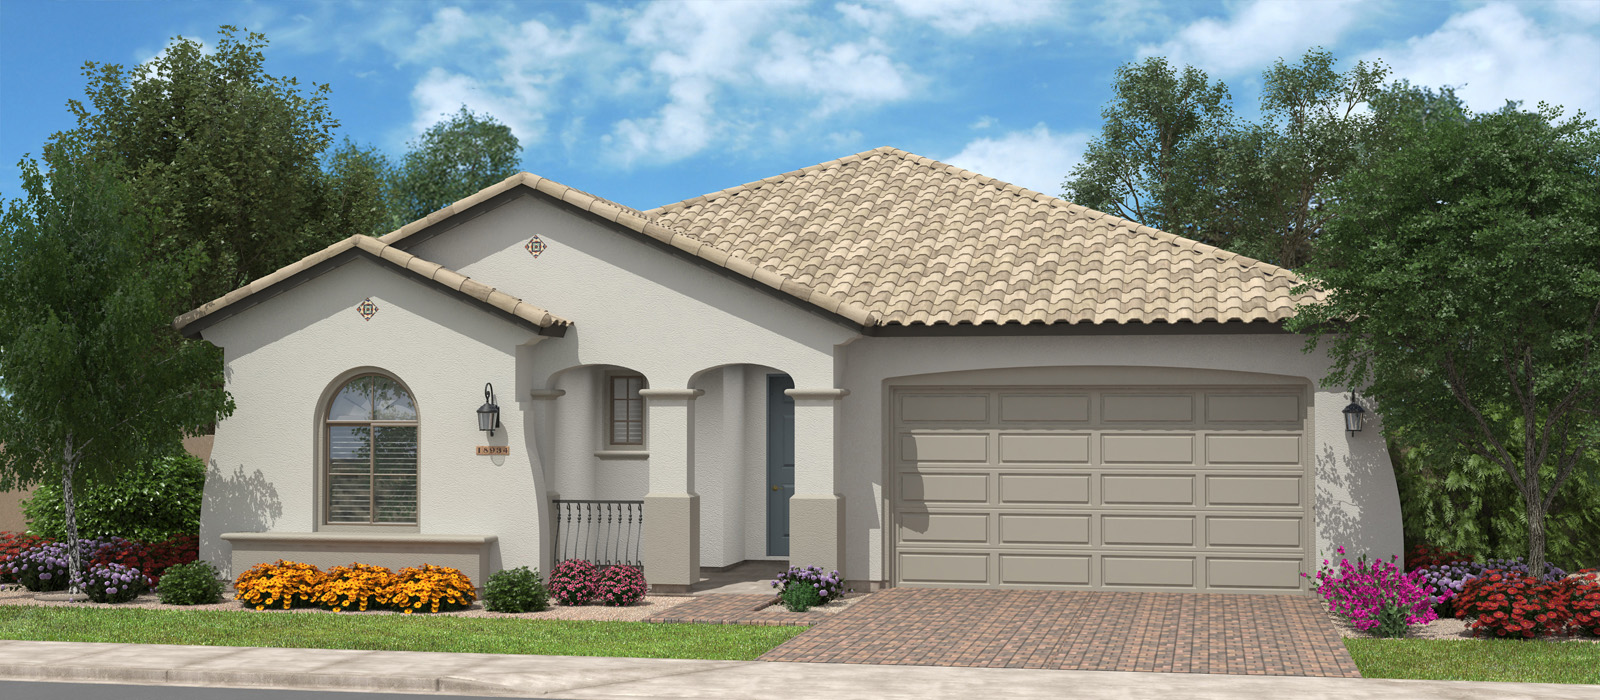 Pelican bay north shore at ironwood crossing by fulton homes for North shore home builders